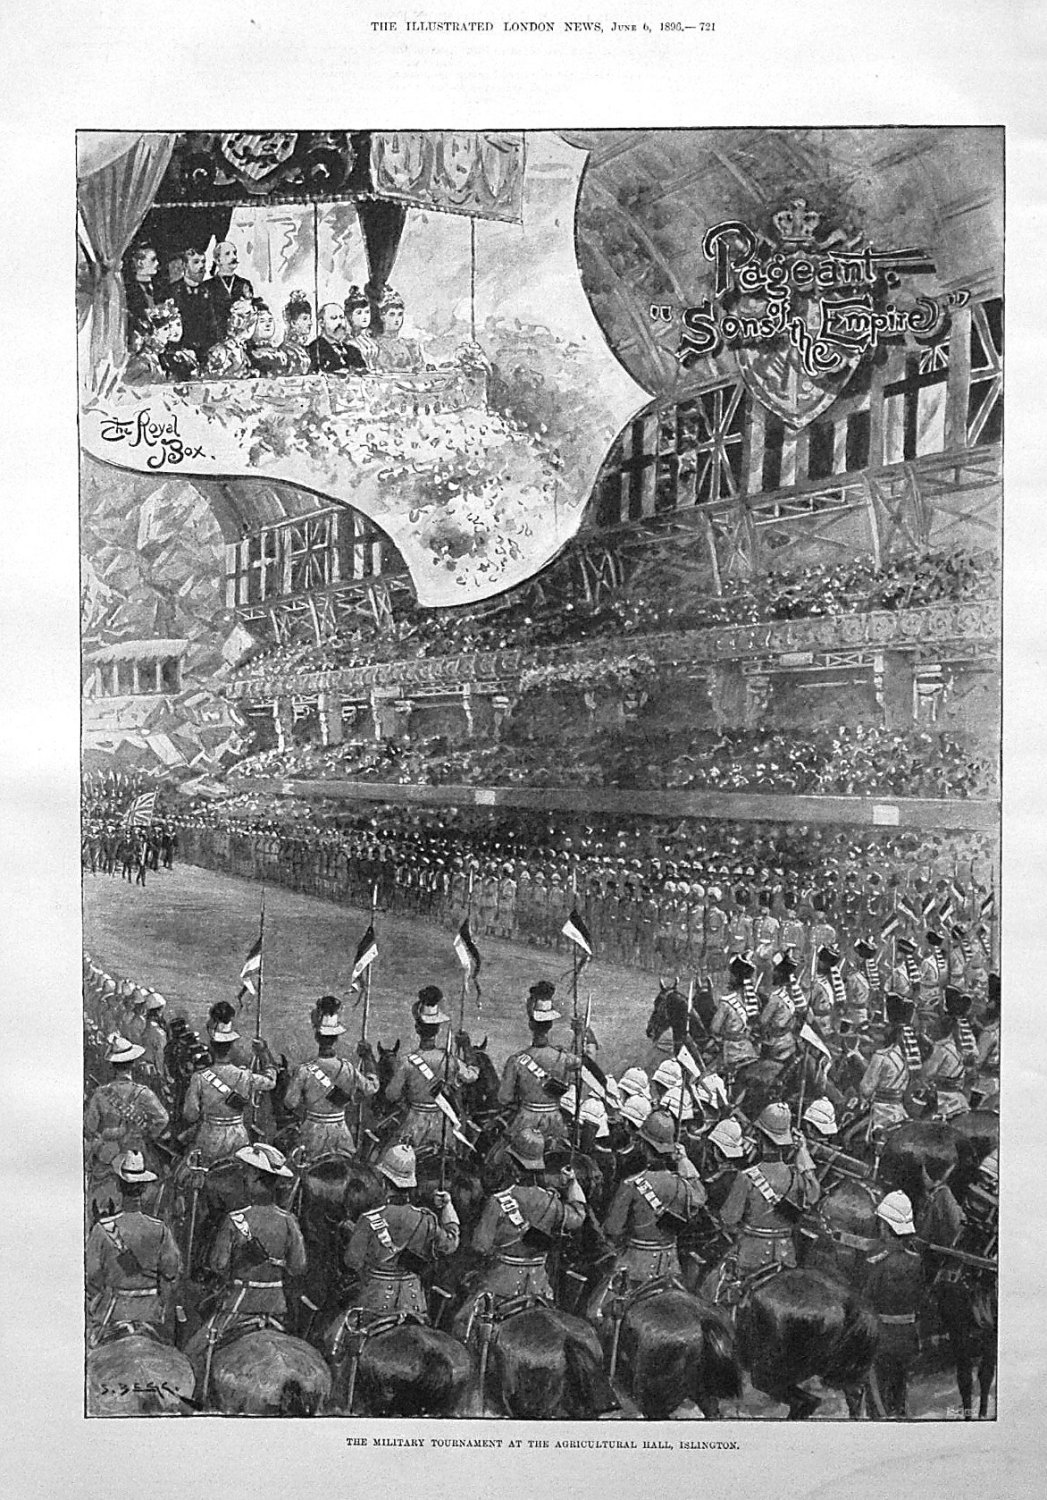 The Military Tournament at the Agricultural Hall, Islington. 1896